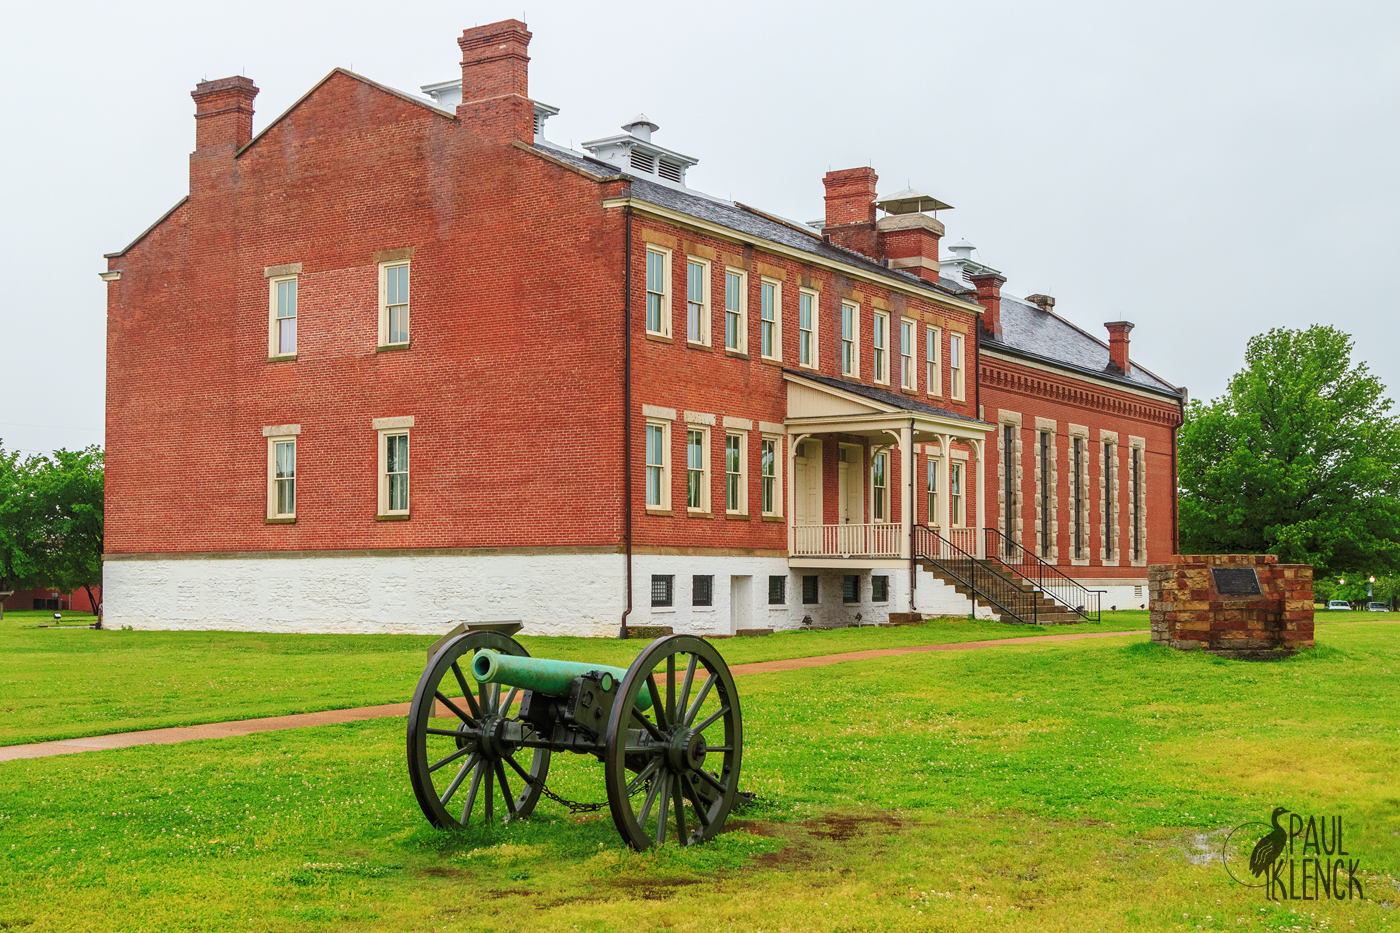 Ft. Smith barracks, courthouse and jail